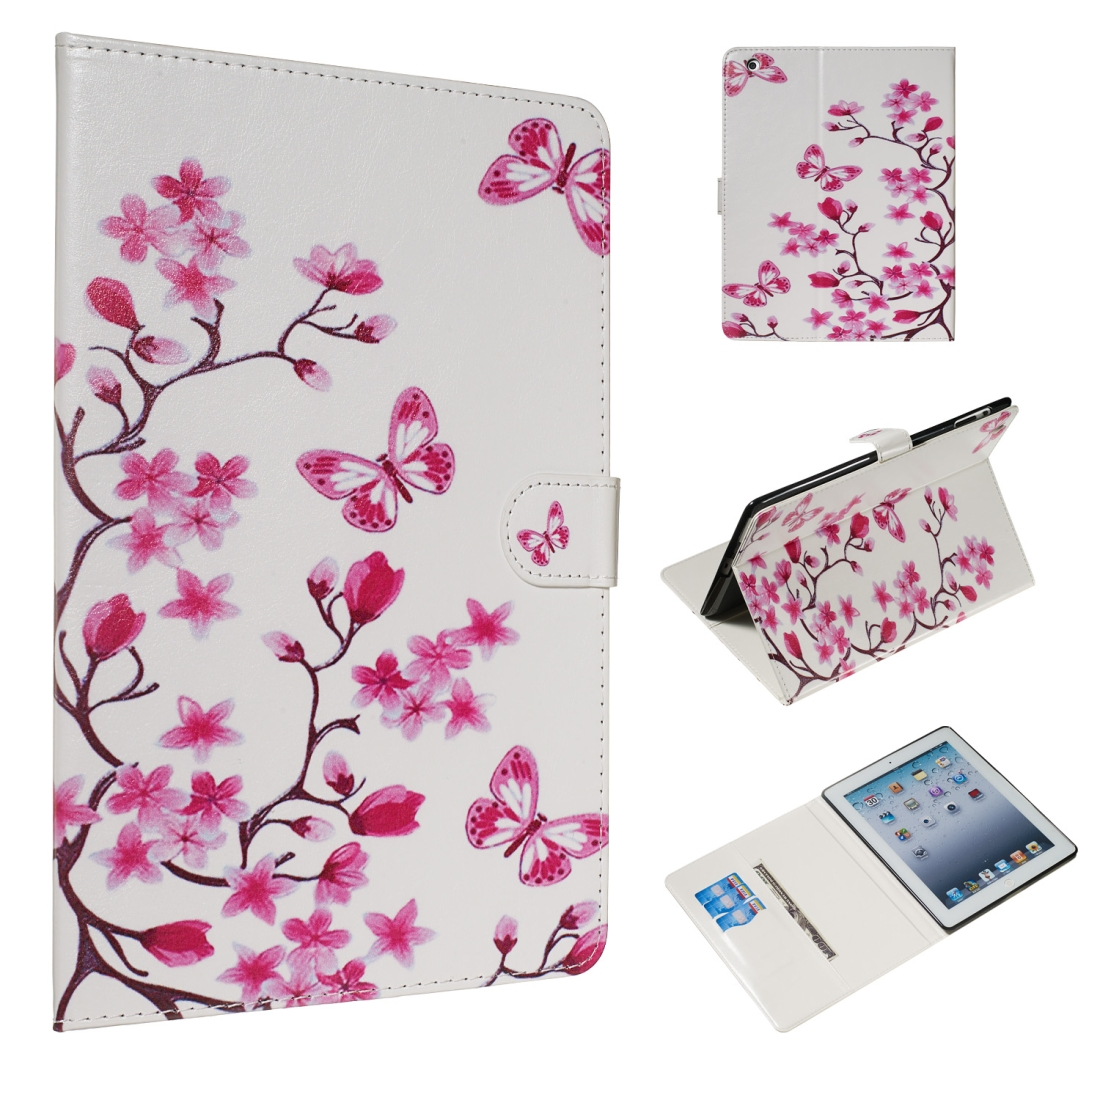 iPad 2 Cover Fits iPad 2,3,4, Featuring A Protective Leather Skin & Sleeves (Butterfly Love Flower)